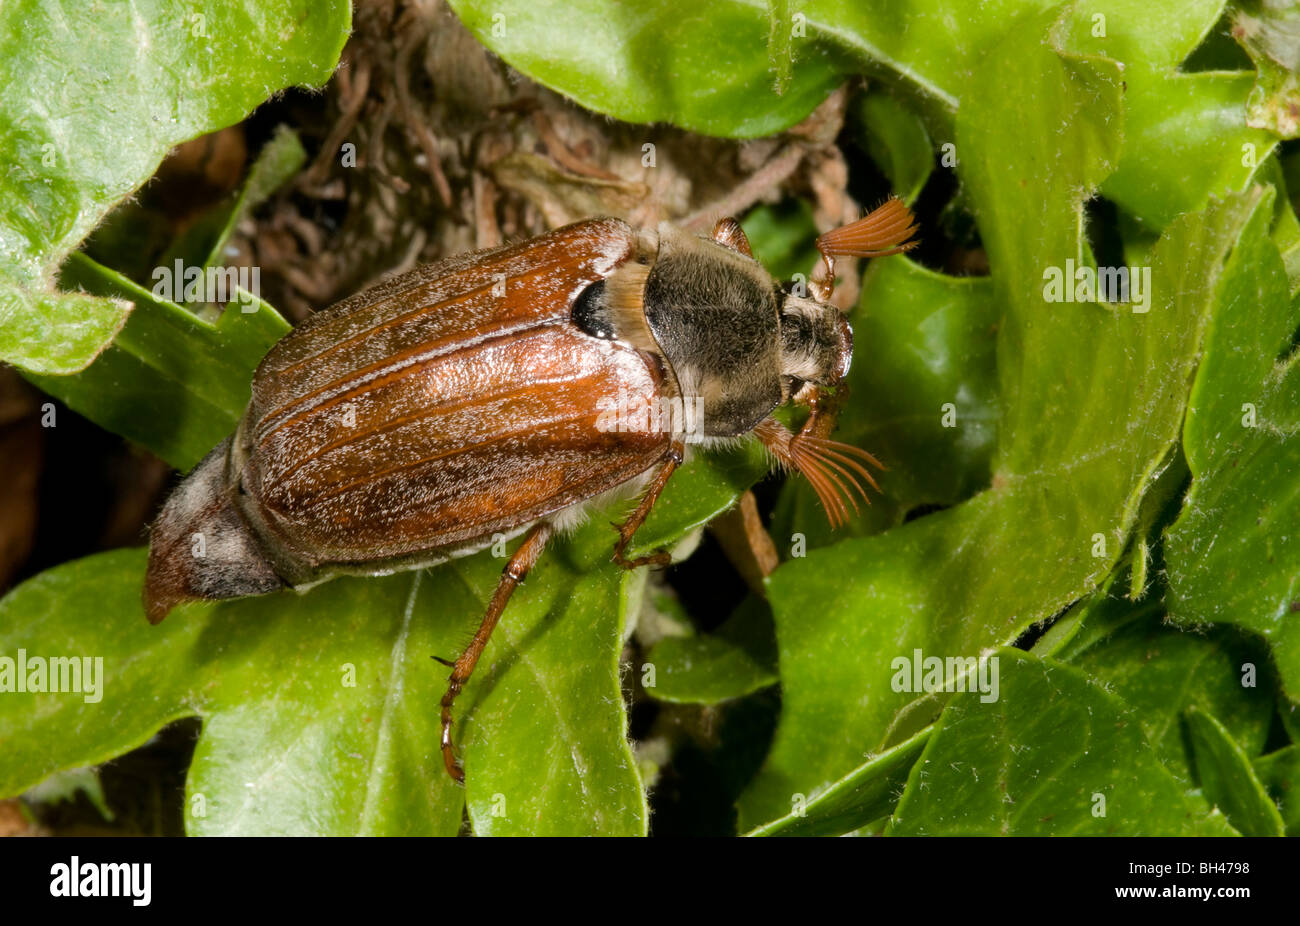 Cockchafer or may bug (Melolontha melolontha). Adult on leaves in garden. Stock Photo